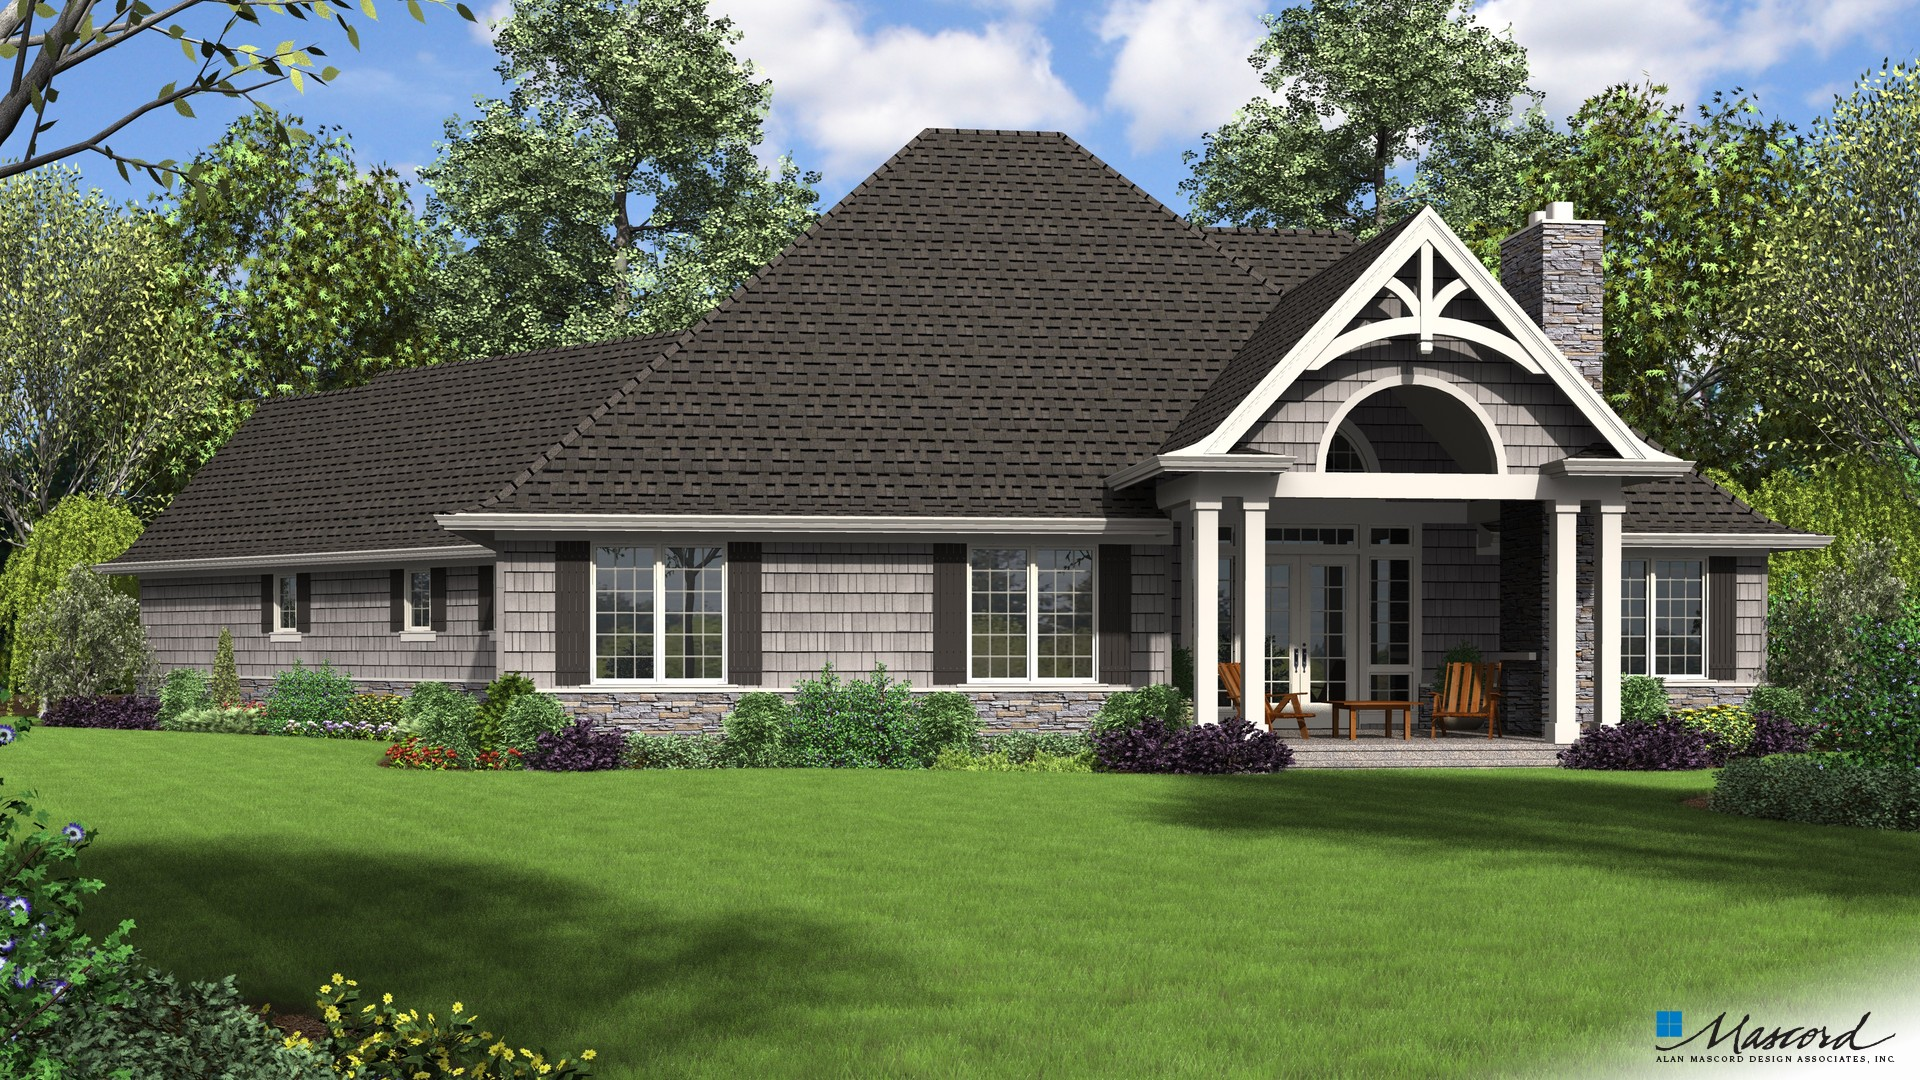 Craftsman House Plan 1248B The Vasquez: 2301 Sqft, 3 Bedrooms, 3.1 ...